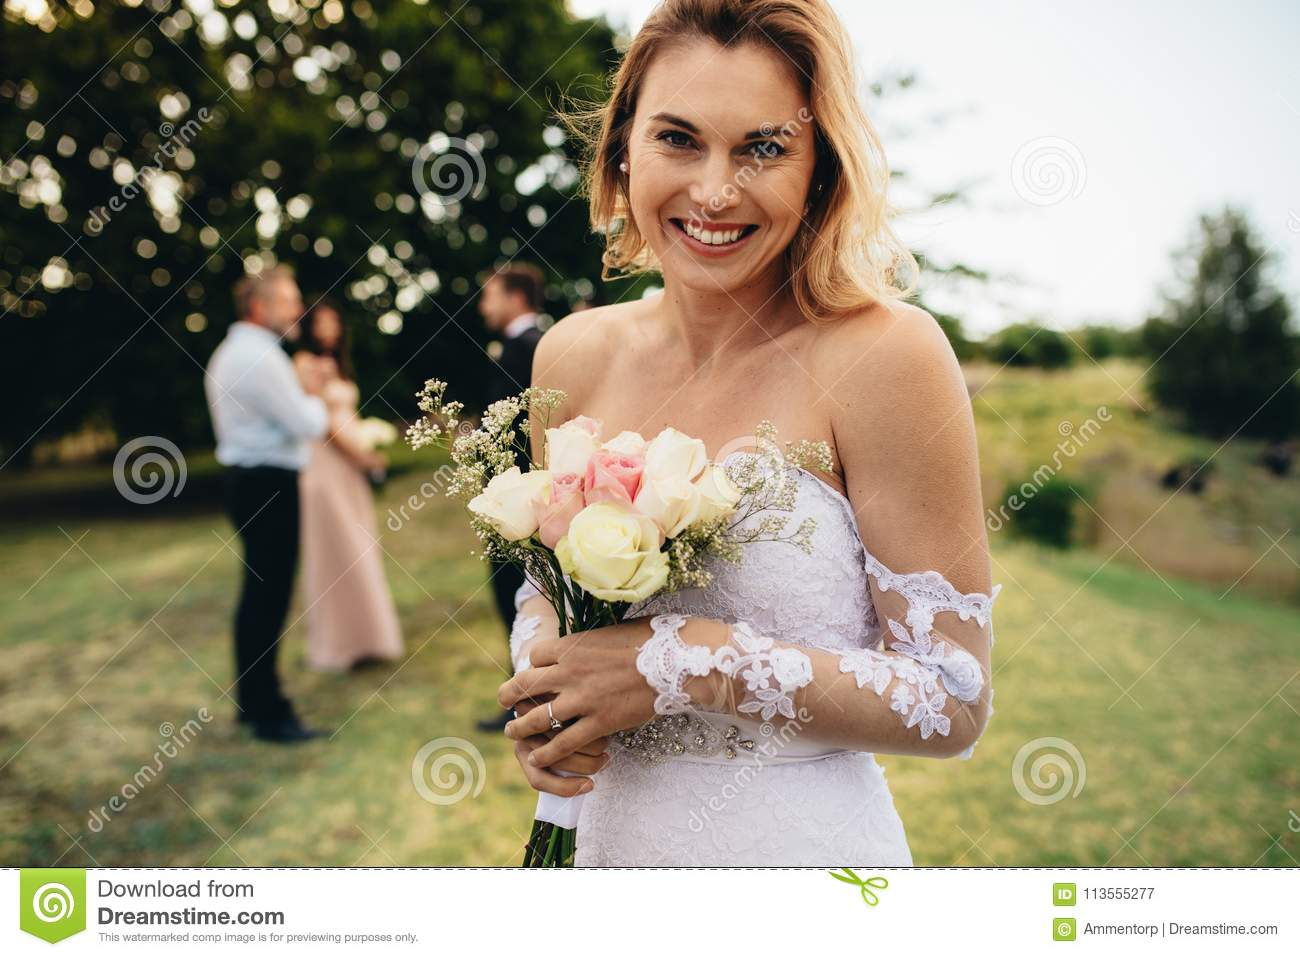 Download Bride Looking Happy At Wedding Party Stock Image - Image of looking, people: 113555277